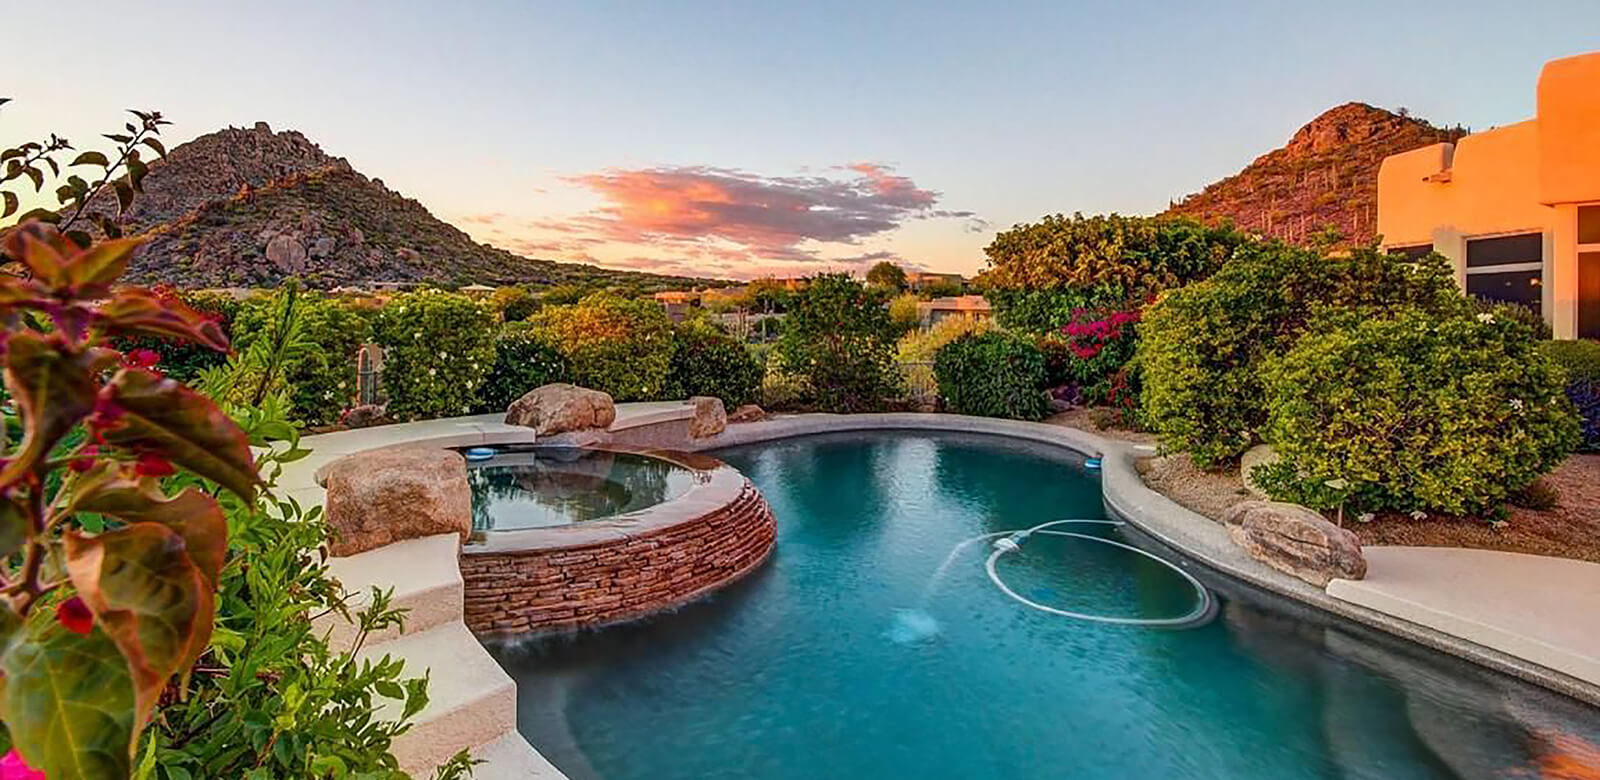 Luxurious Pool Backyard